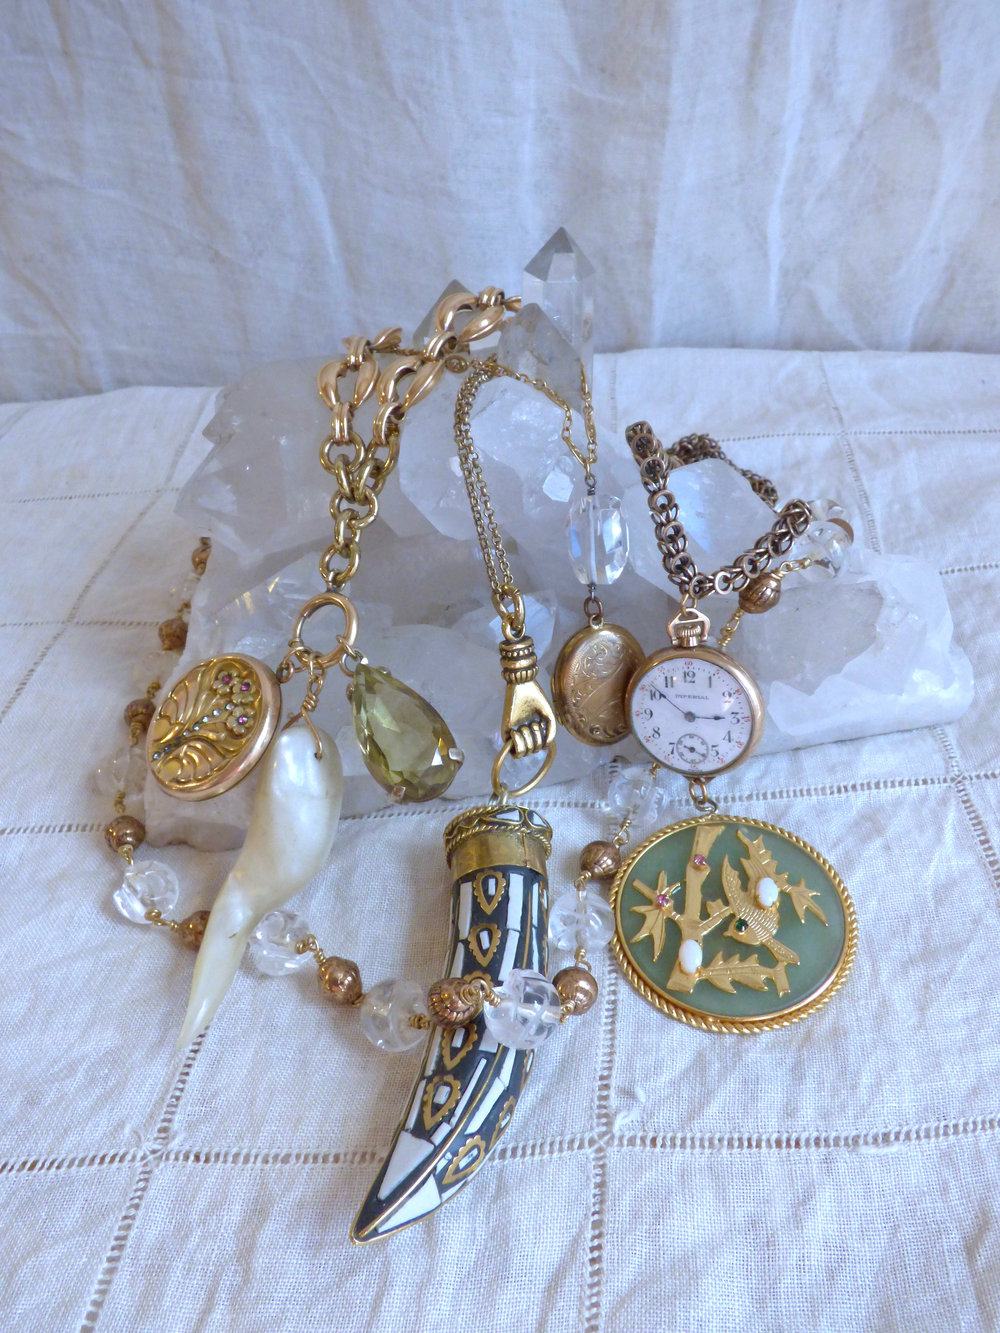 Vintage gold filled and brass charms, carved quartz skull beads, and antique gold filled chains.